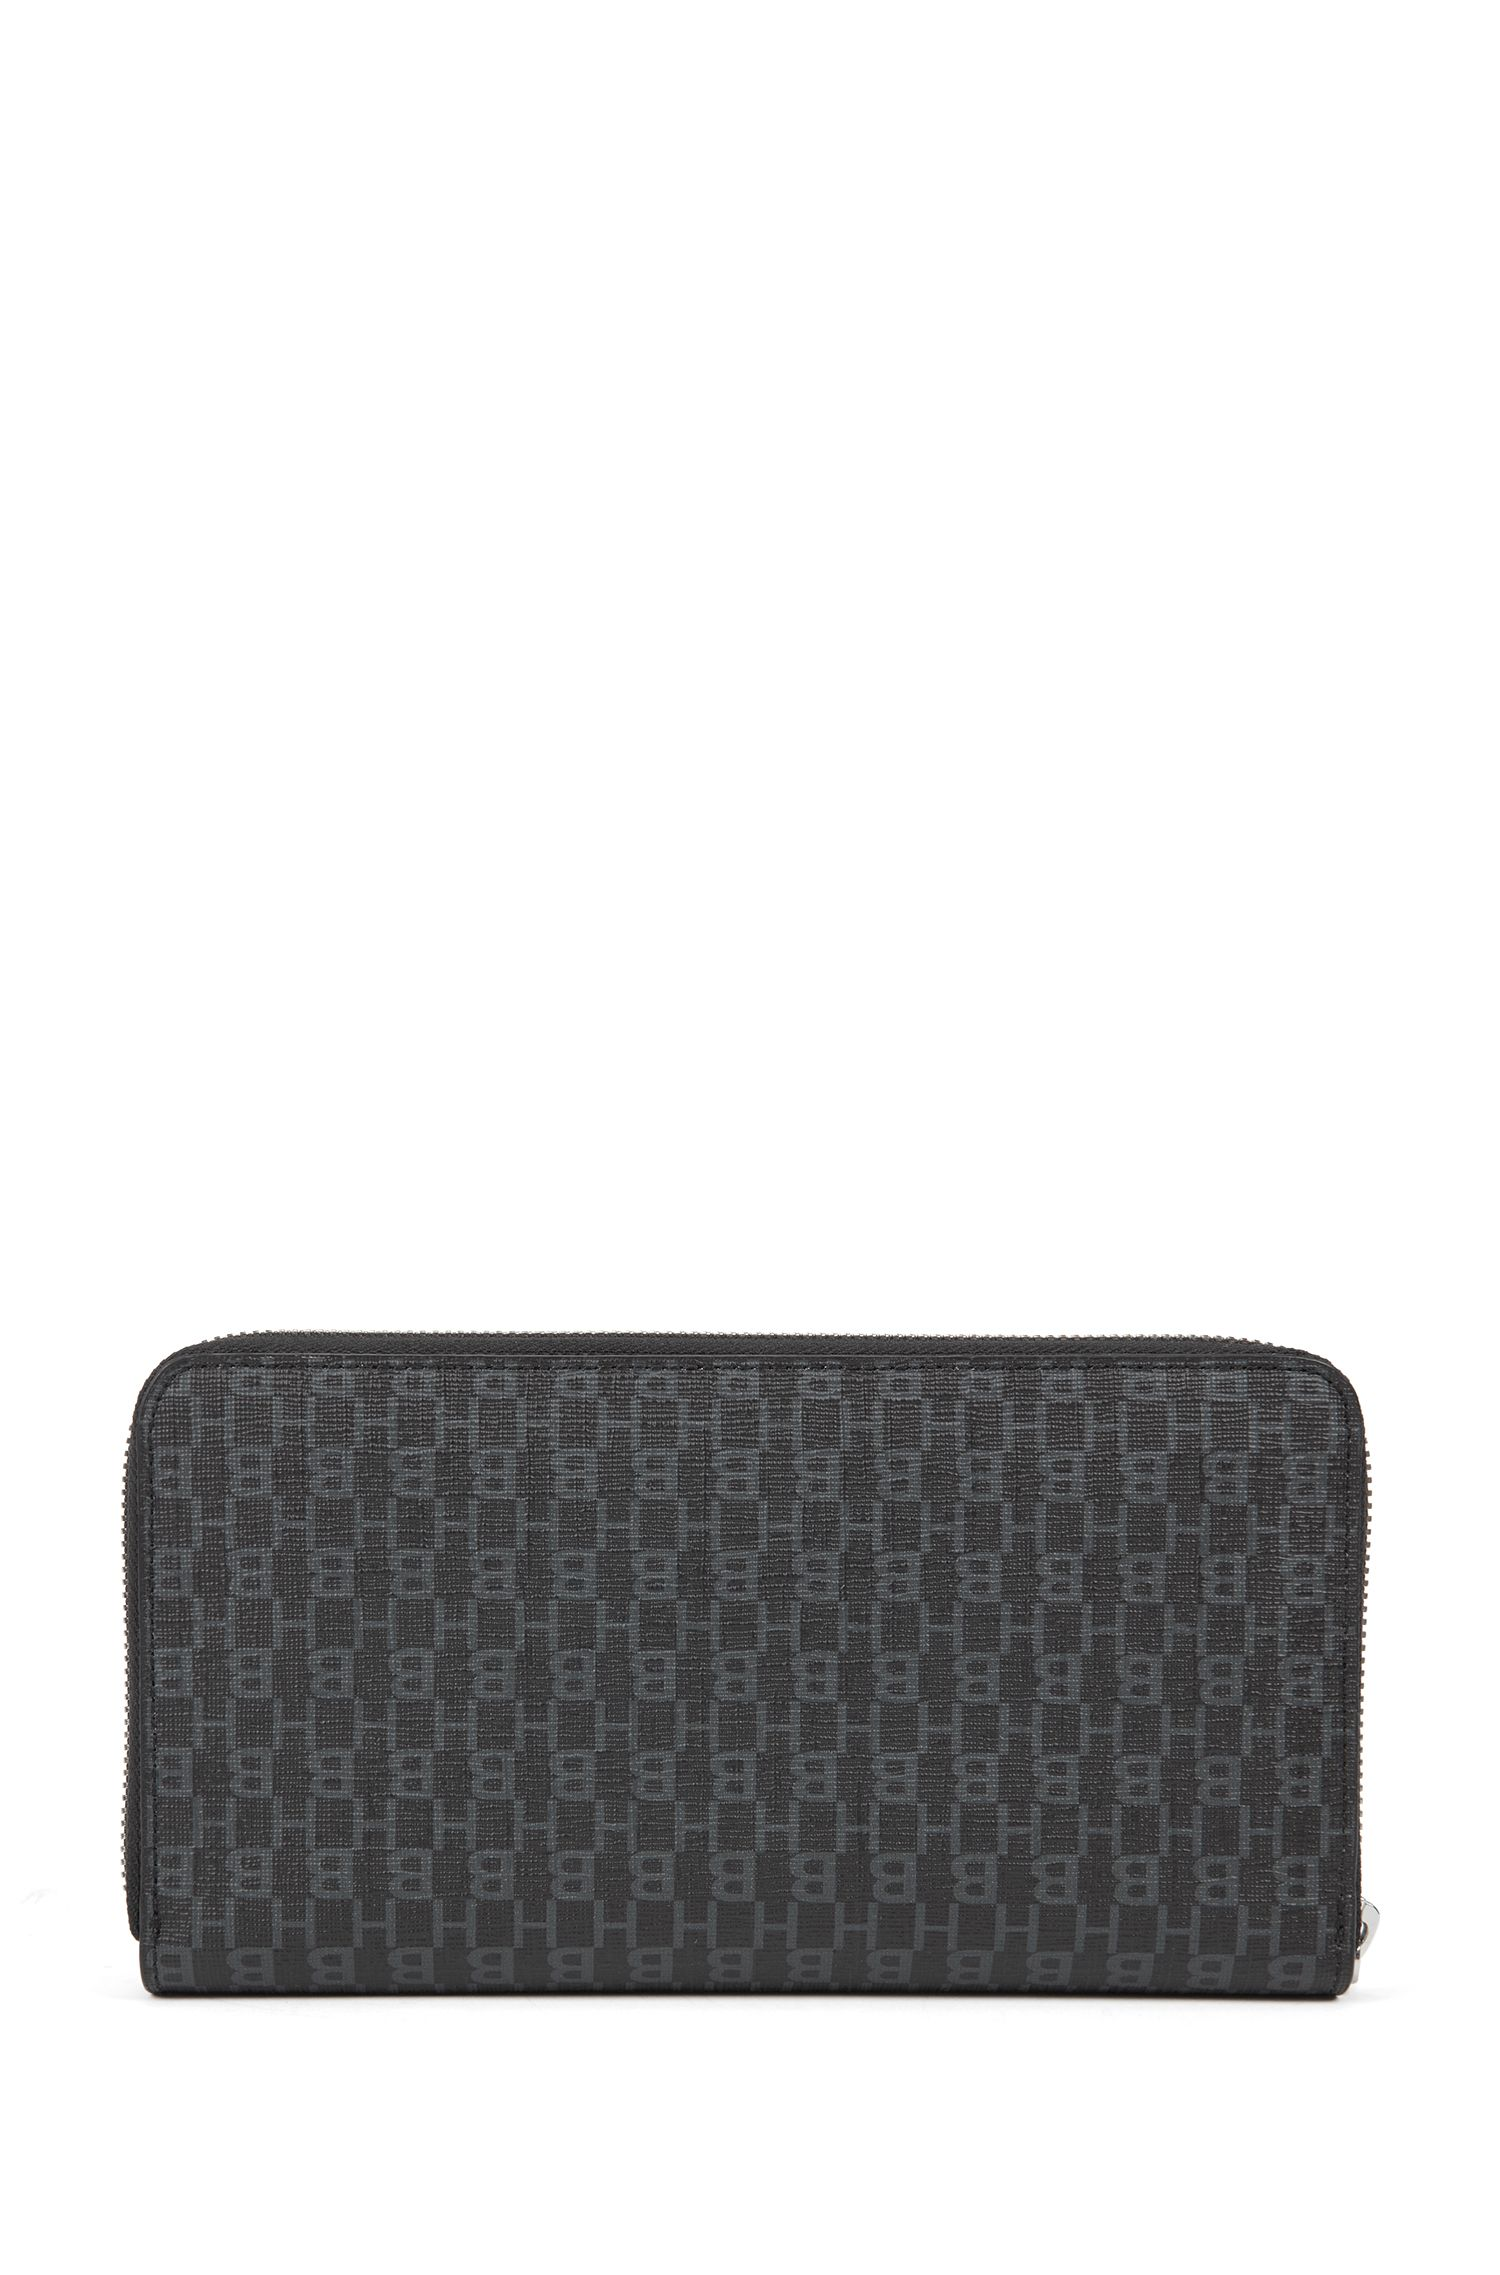 Ziparound wallet in Italian fabric with monogram print, Black